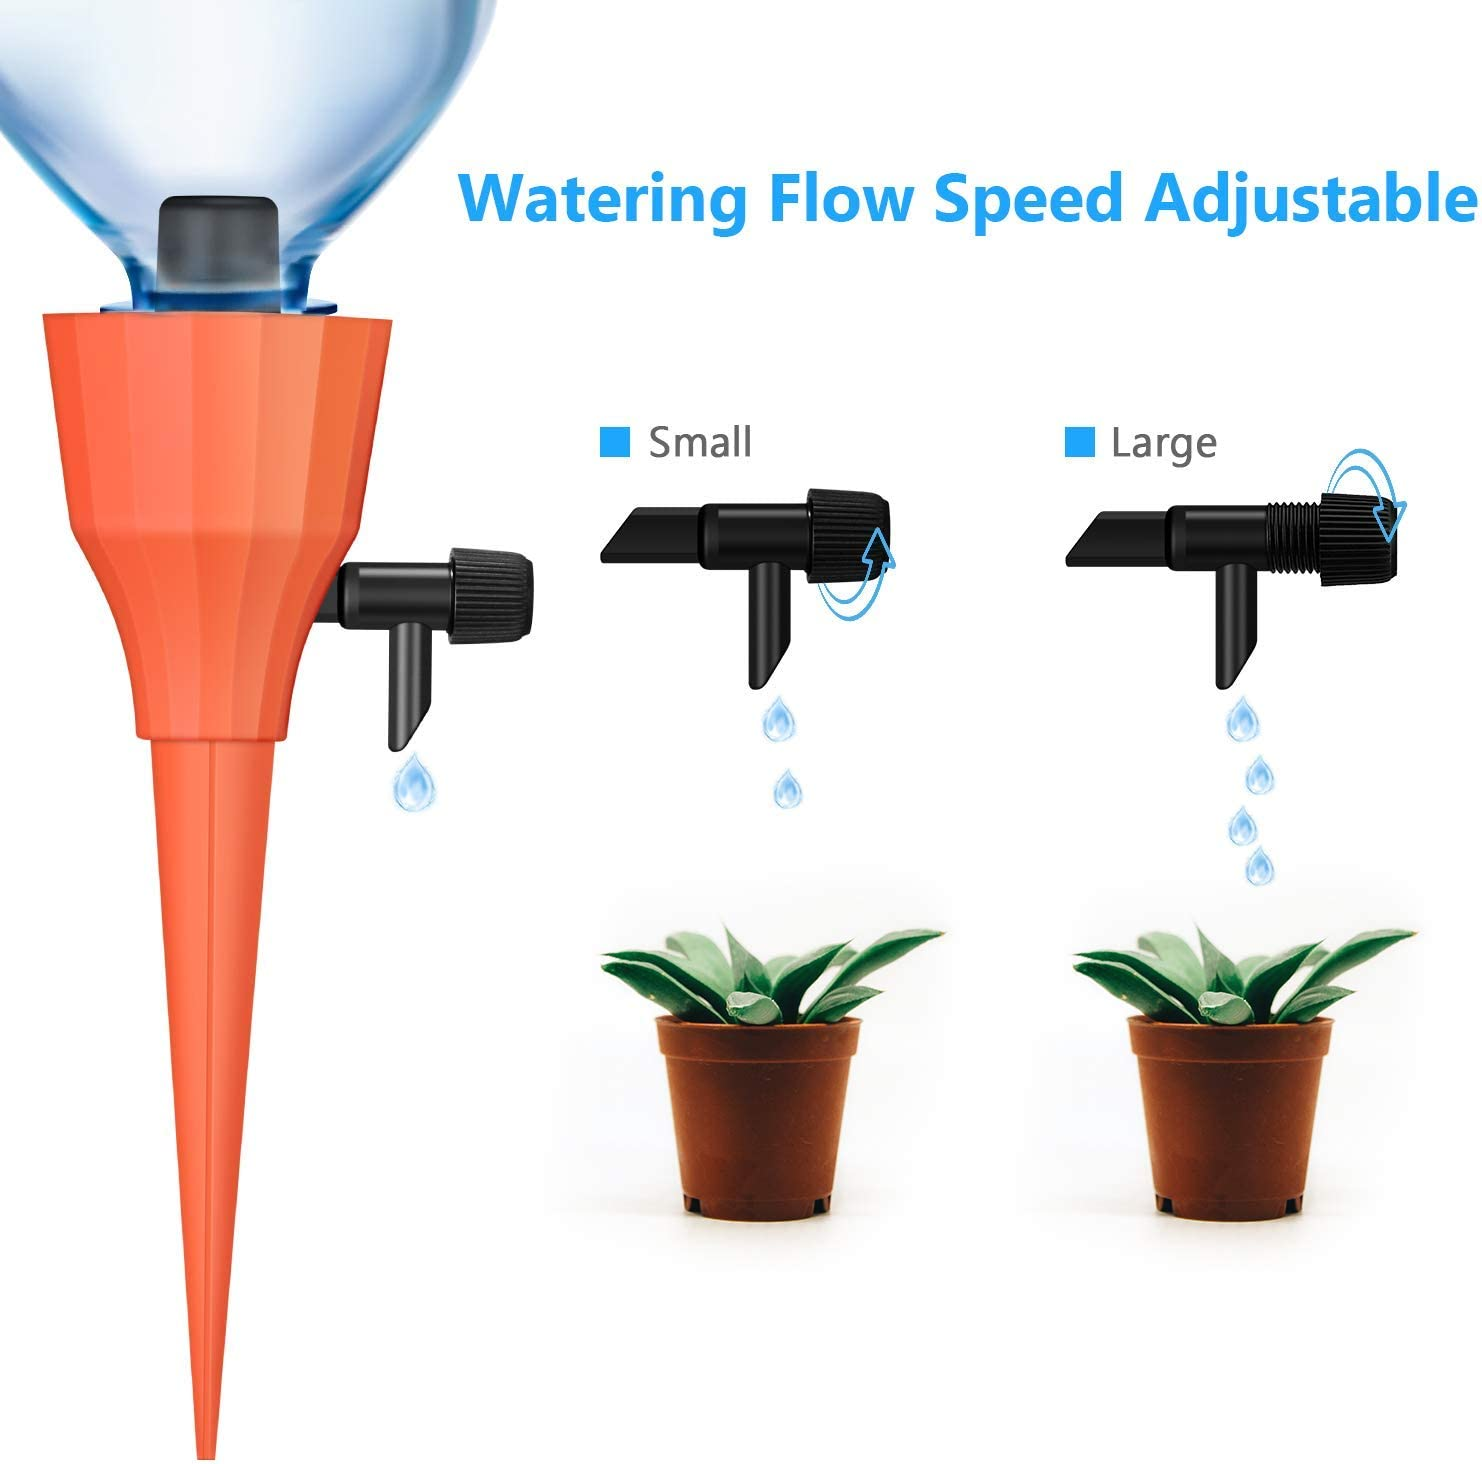 Poolan 5 Pack Vacation Plantes Waterer Self Watering Stakes Automatic Watering System 5 Plant Self Drip Irrigation Slow Release for Indoor or Outdoor Houseplants